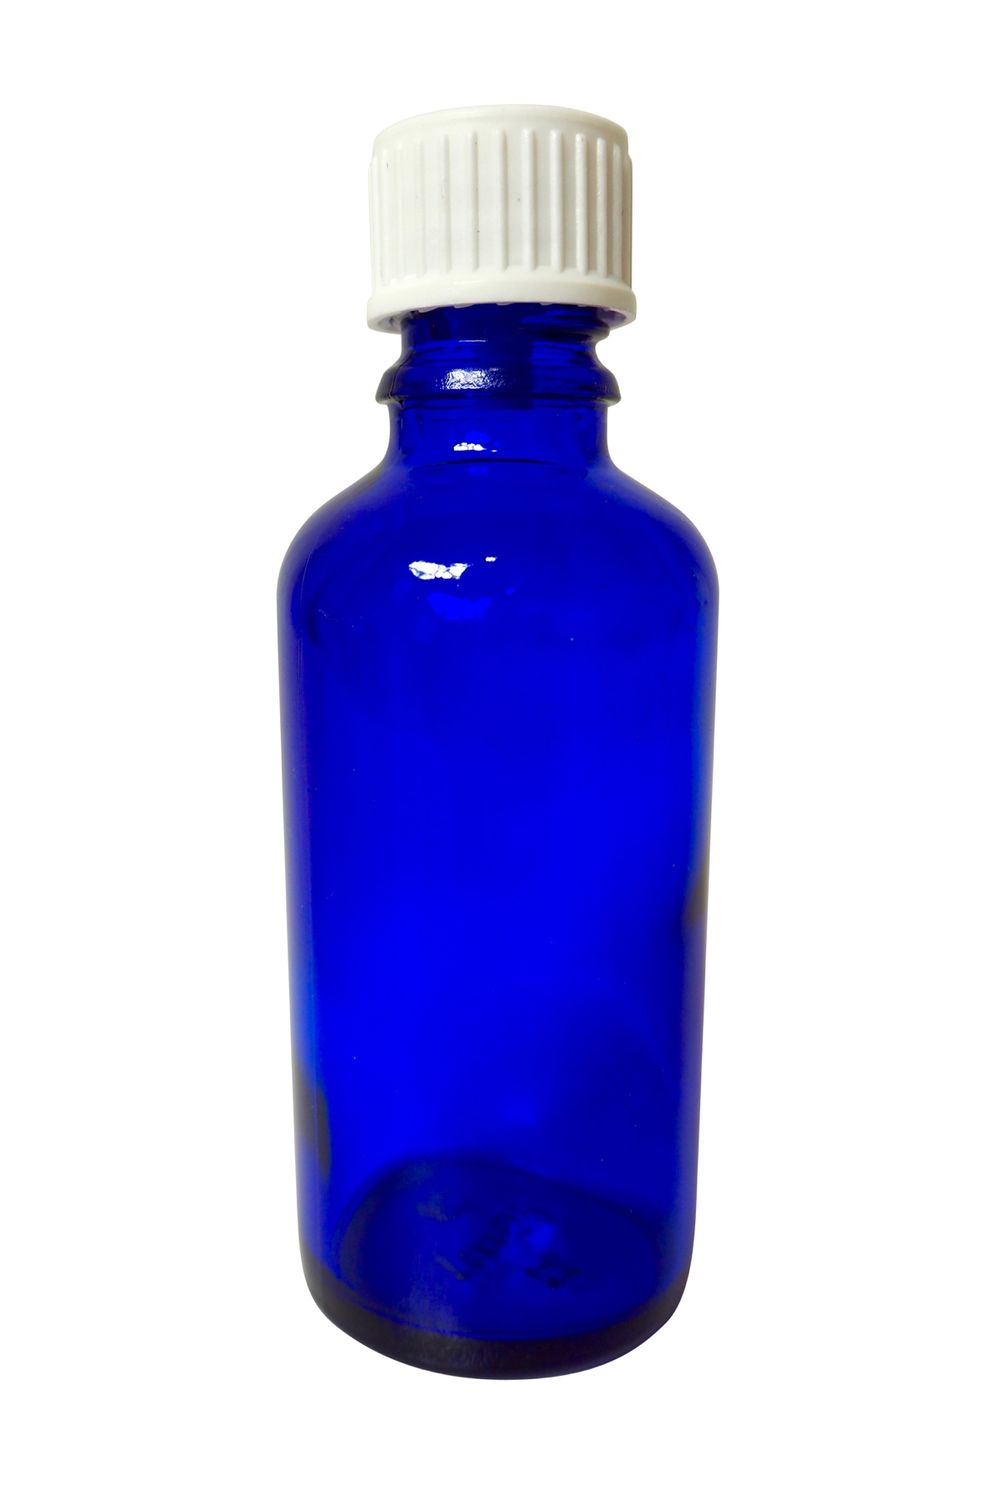 Cobalt Blue Bottle 50 ml DIN 18 Thread & Lid